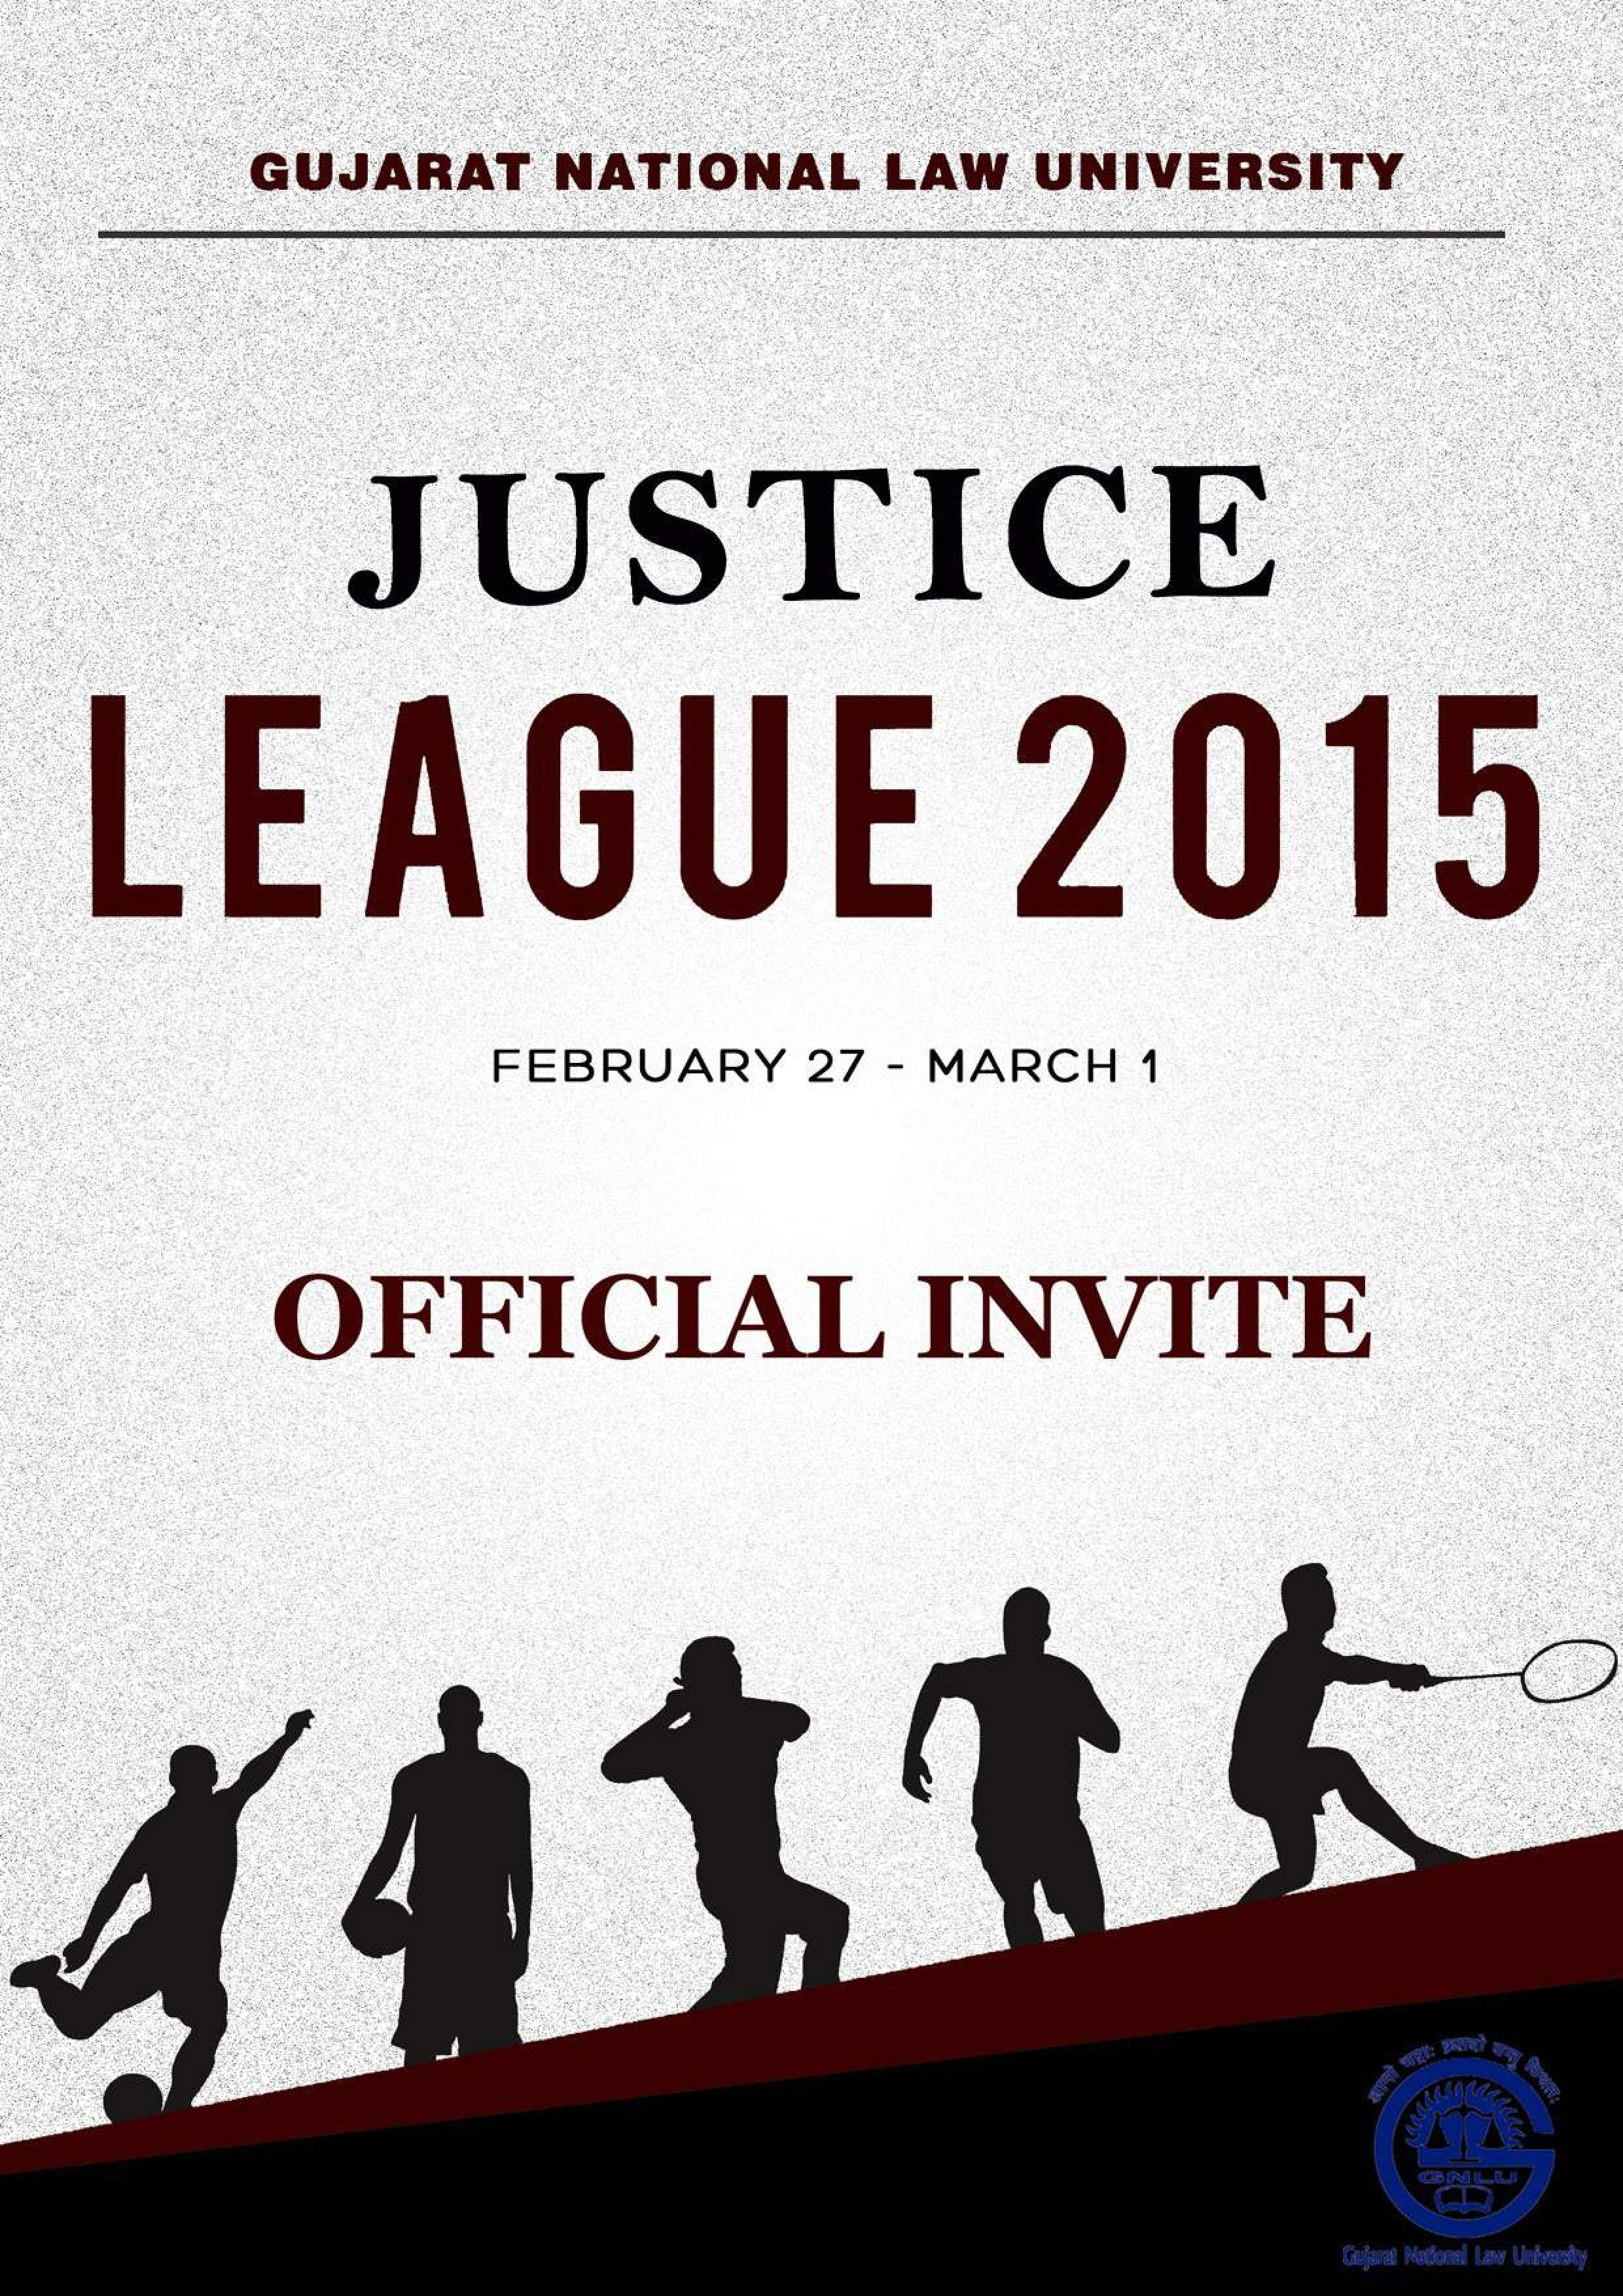 Pre invite for gnlu sports fest justice league 2015 official invite jl15pressed page 001 stopboris Choice Image